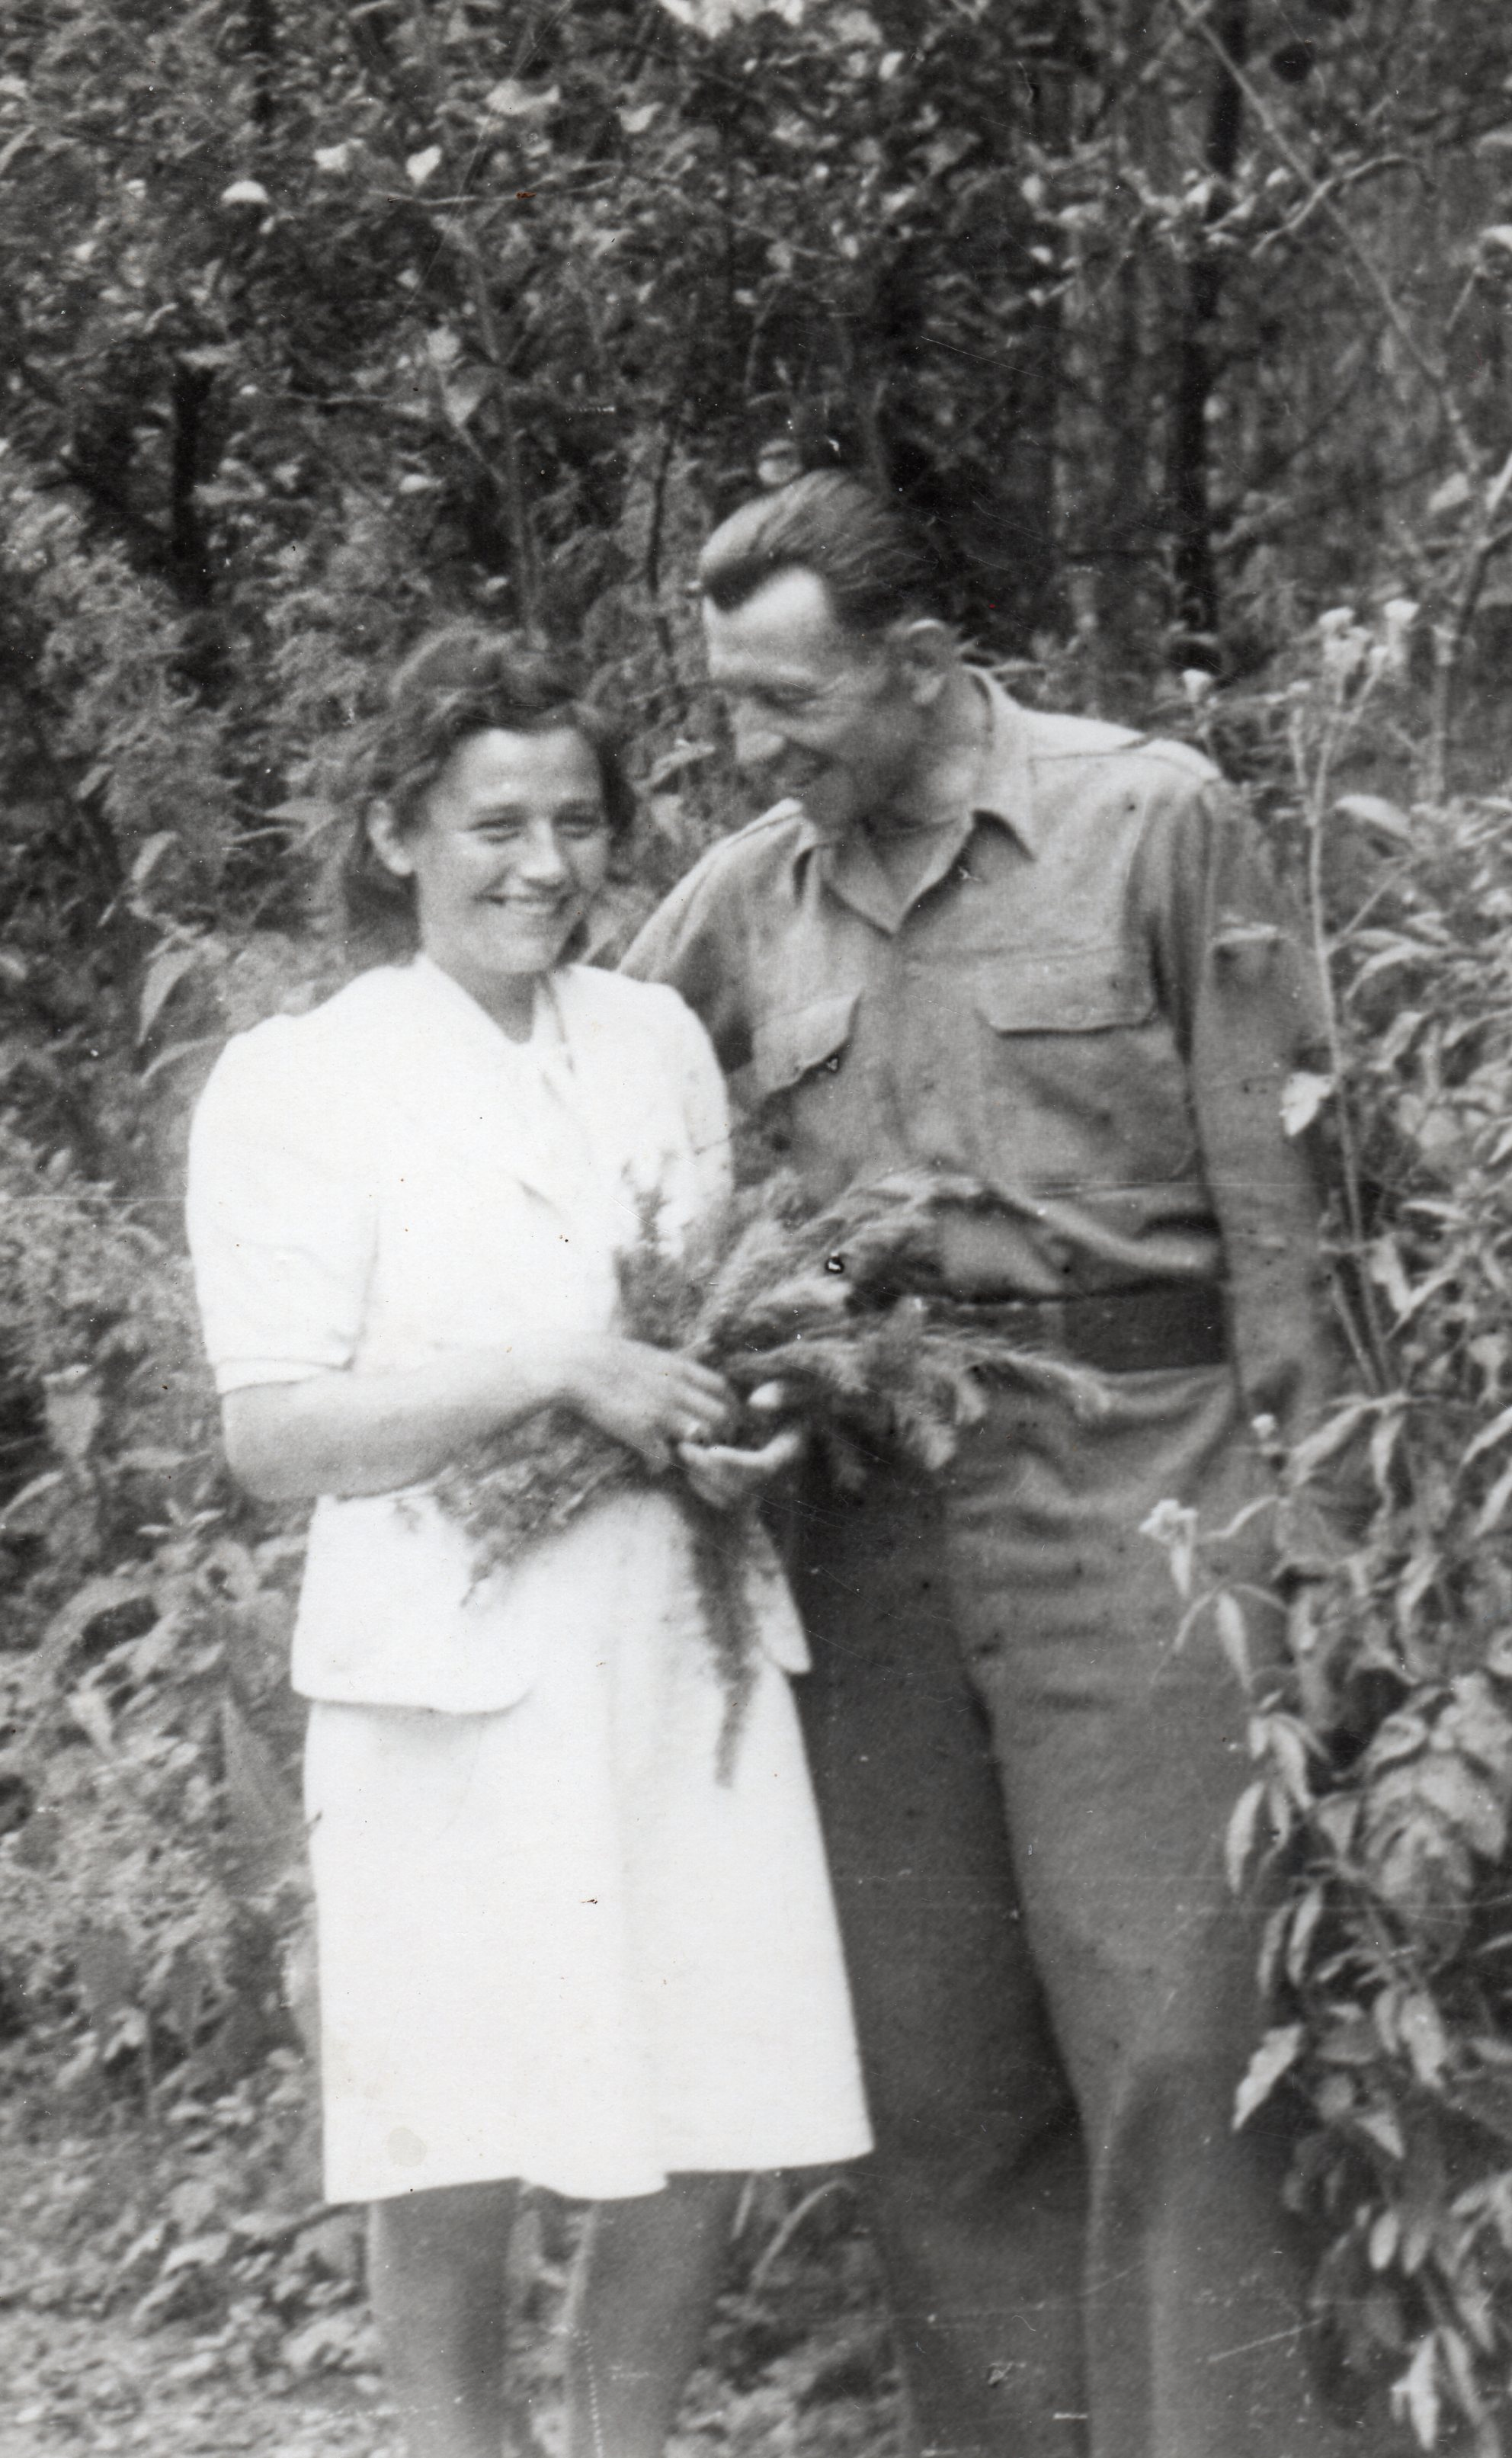 A black  and white photo of Paweł in army fatigues, and Irena in a white suit. She has some greenery in her hands. Both are smiling  widely and Paweł is looking down at Irena.